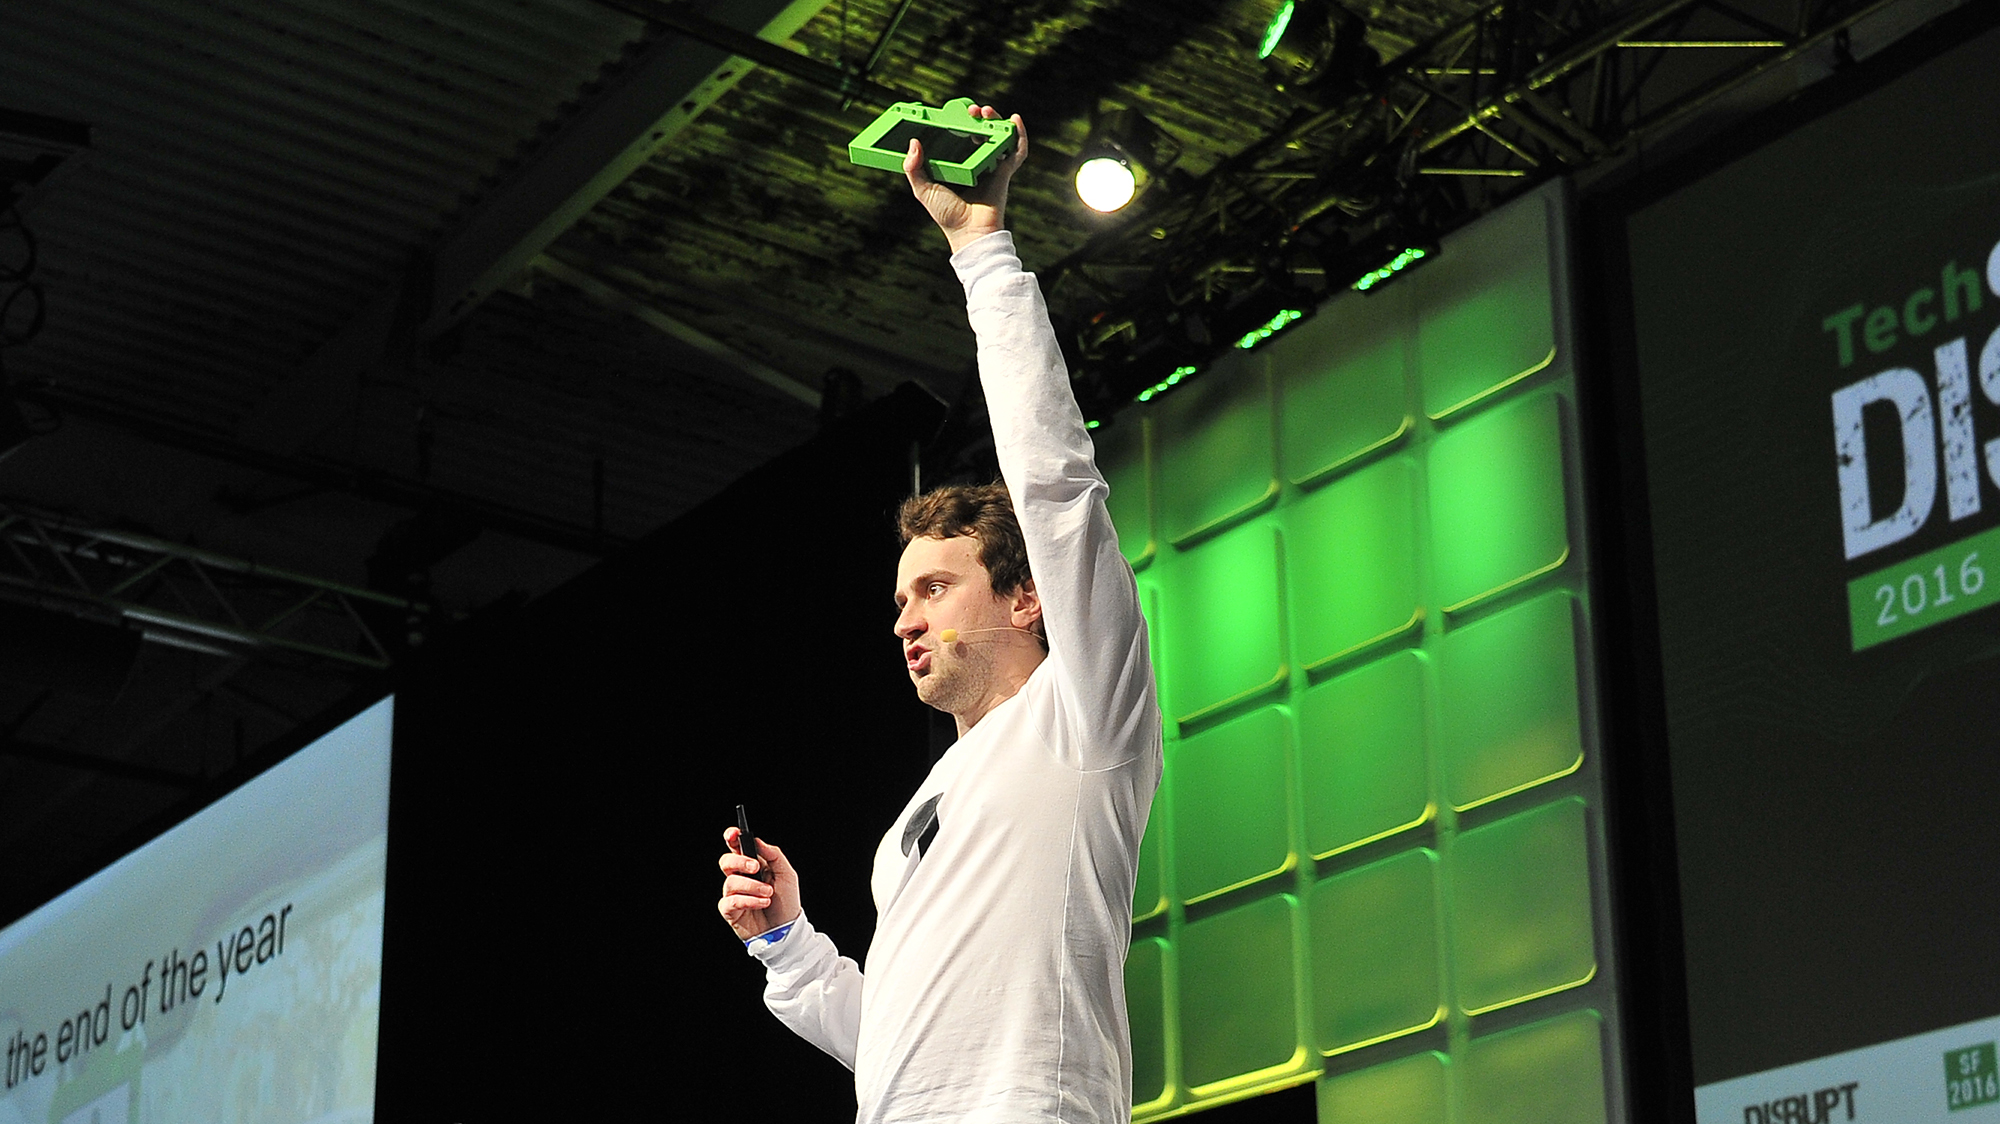 Comma.ai founder George Hotz shows off his autonomous car kit at a TechCrunch event earlier this year.